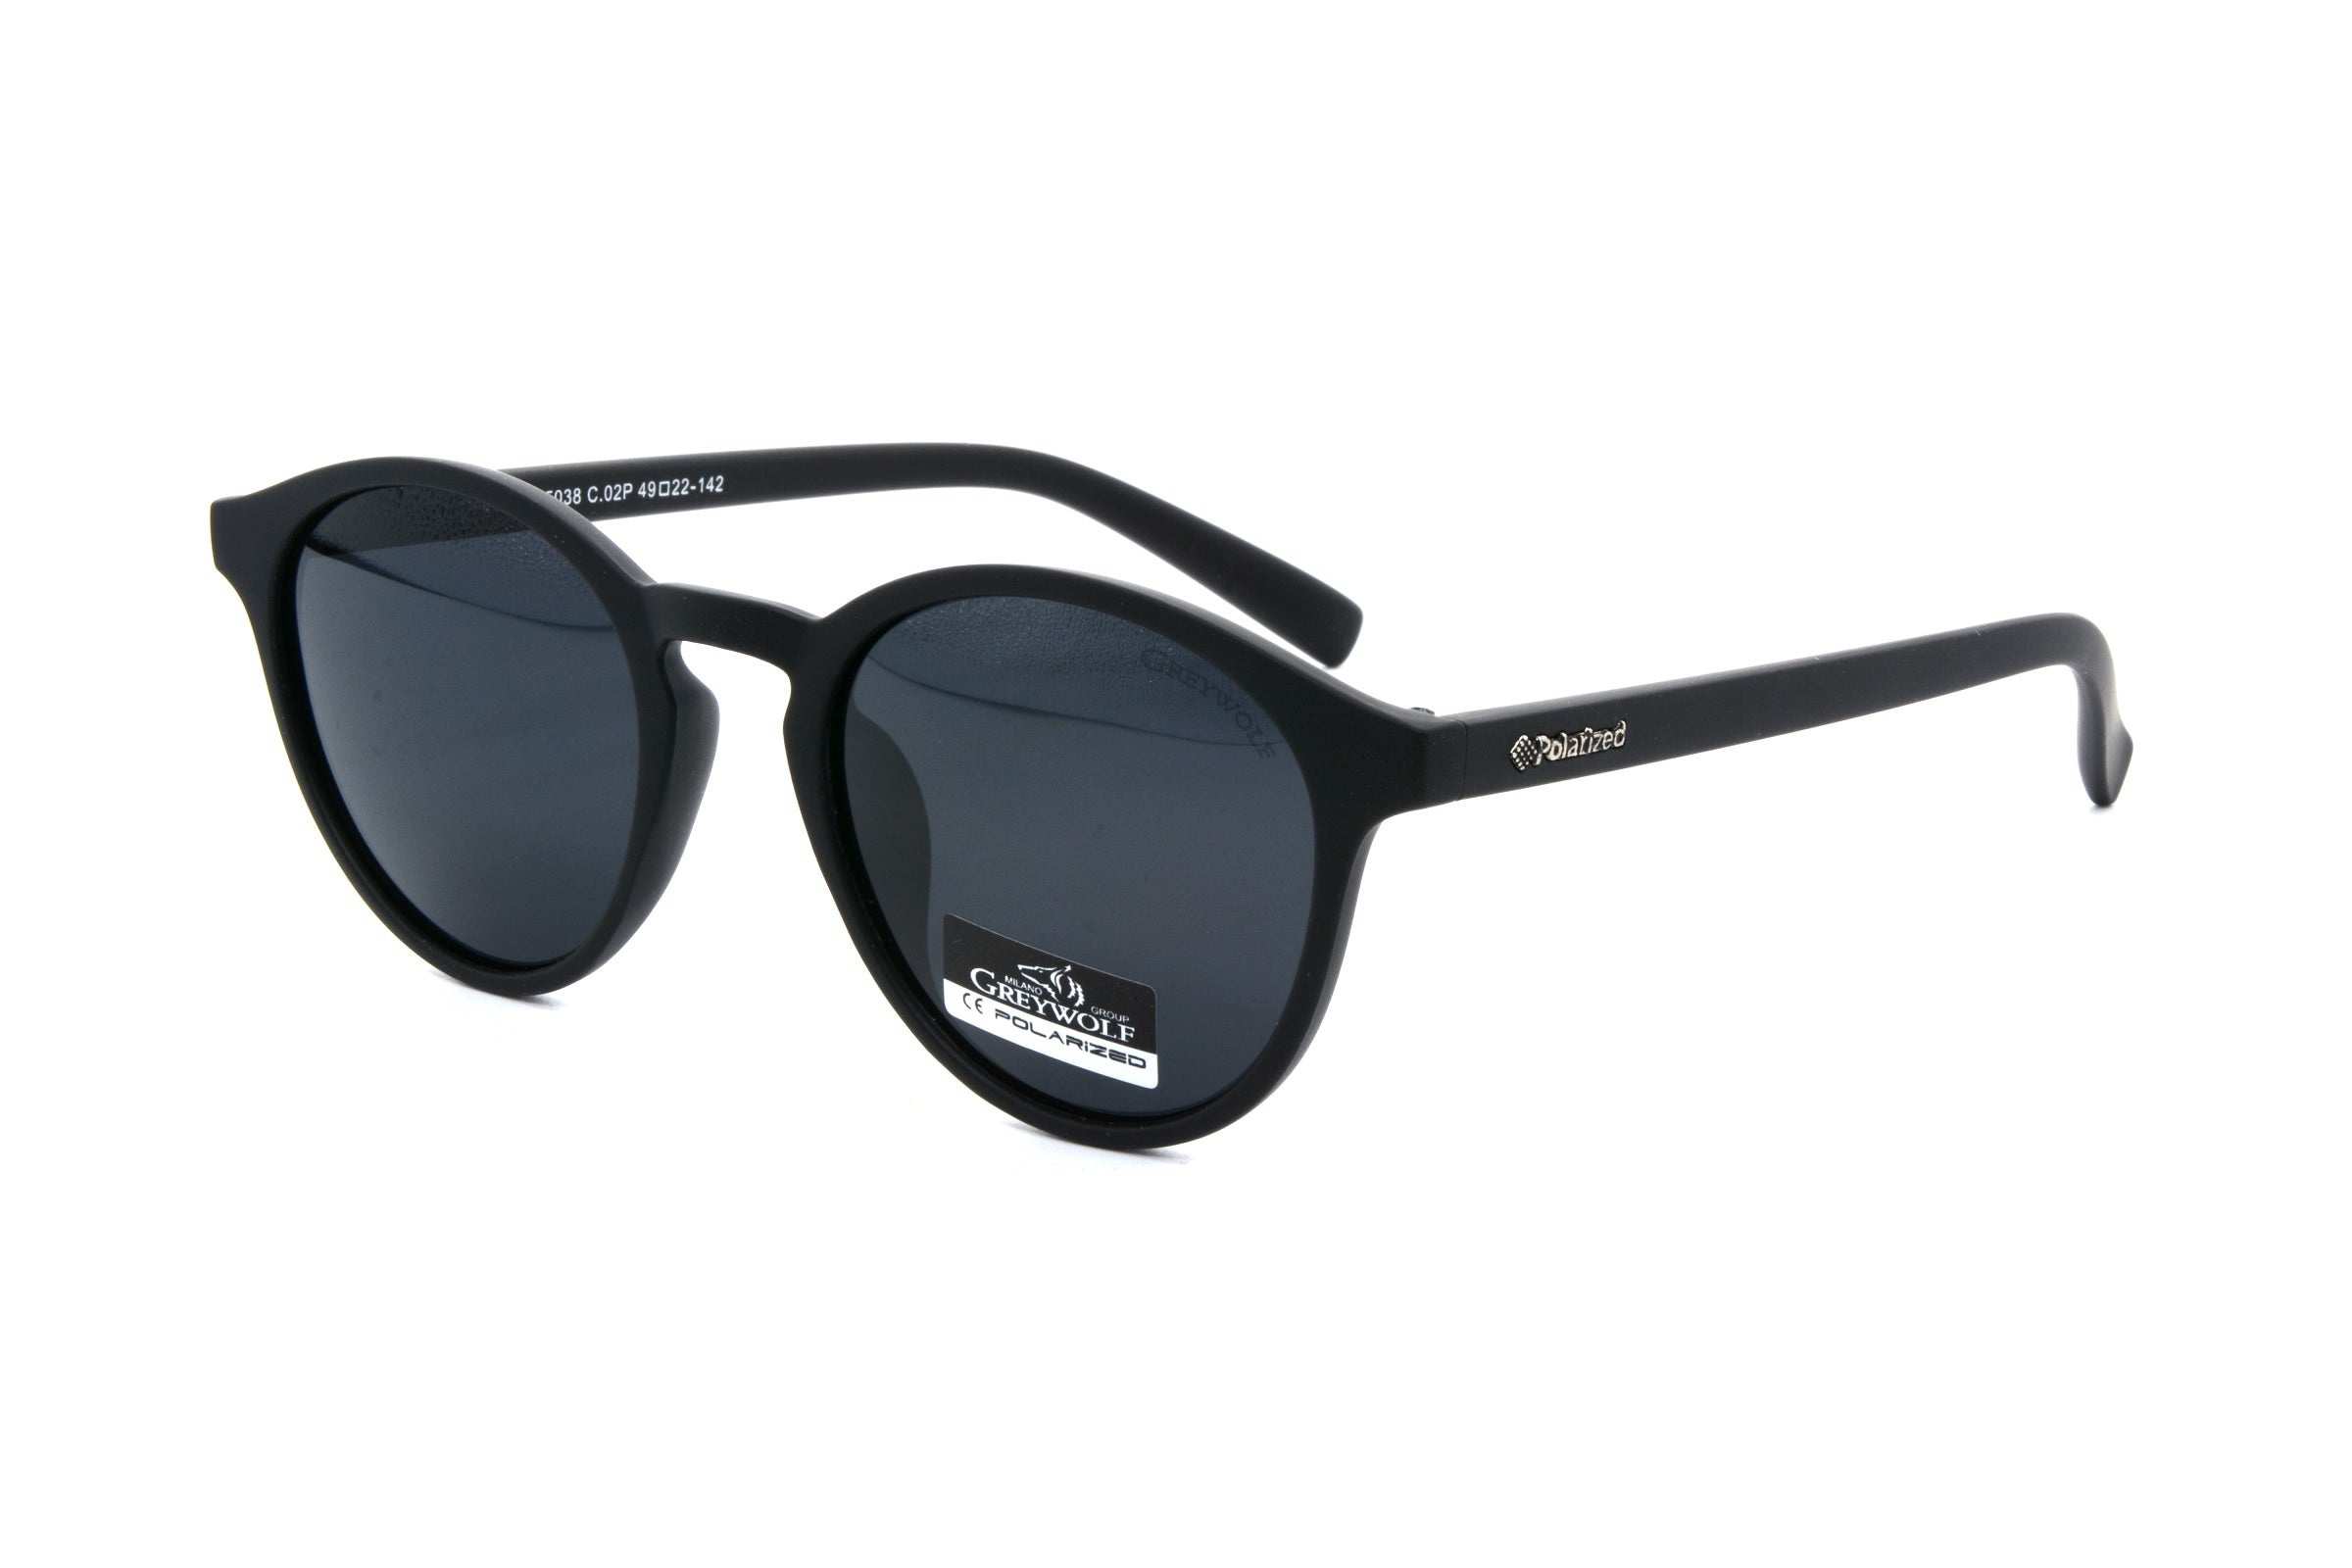 Grey Wolf sunglasses 5038 C02P